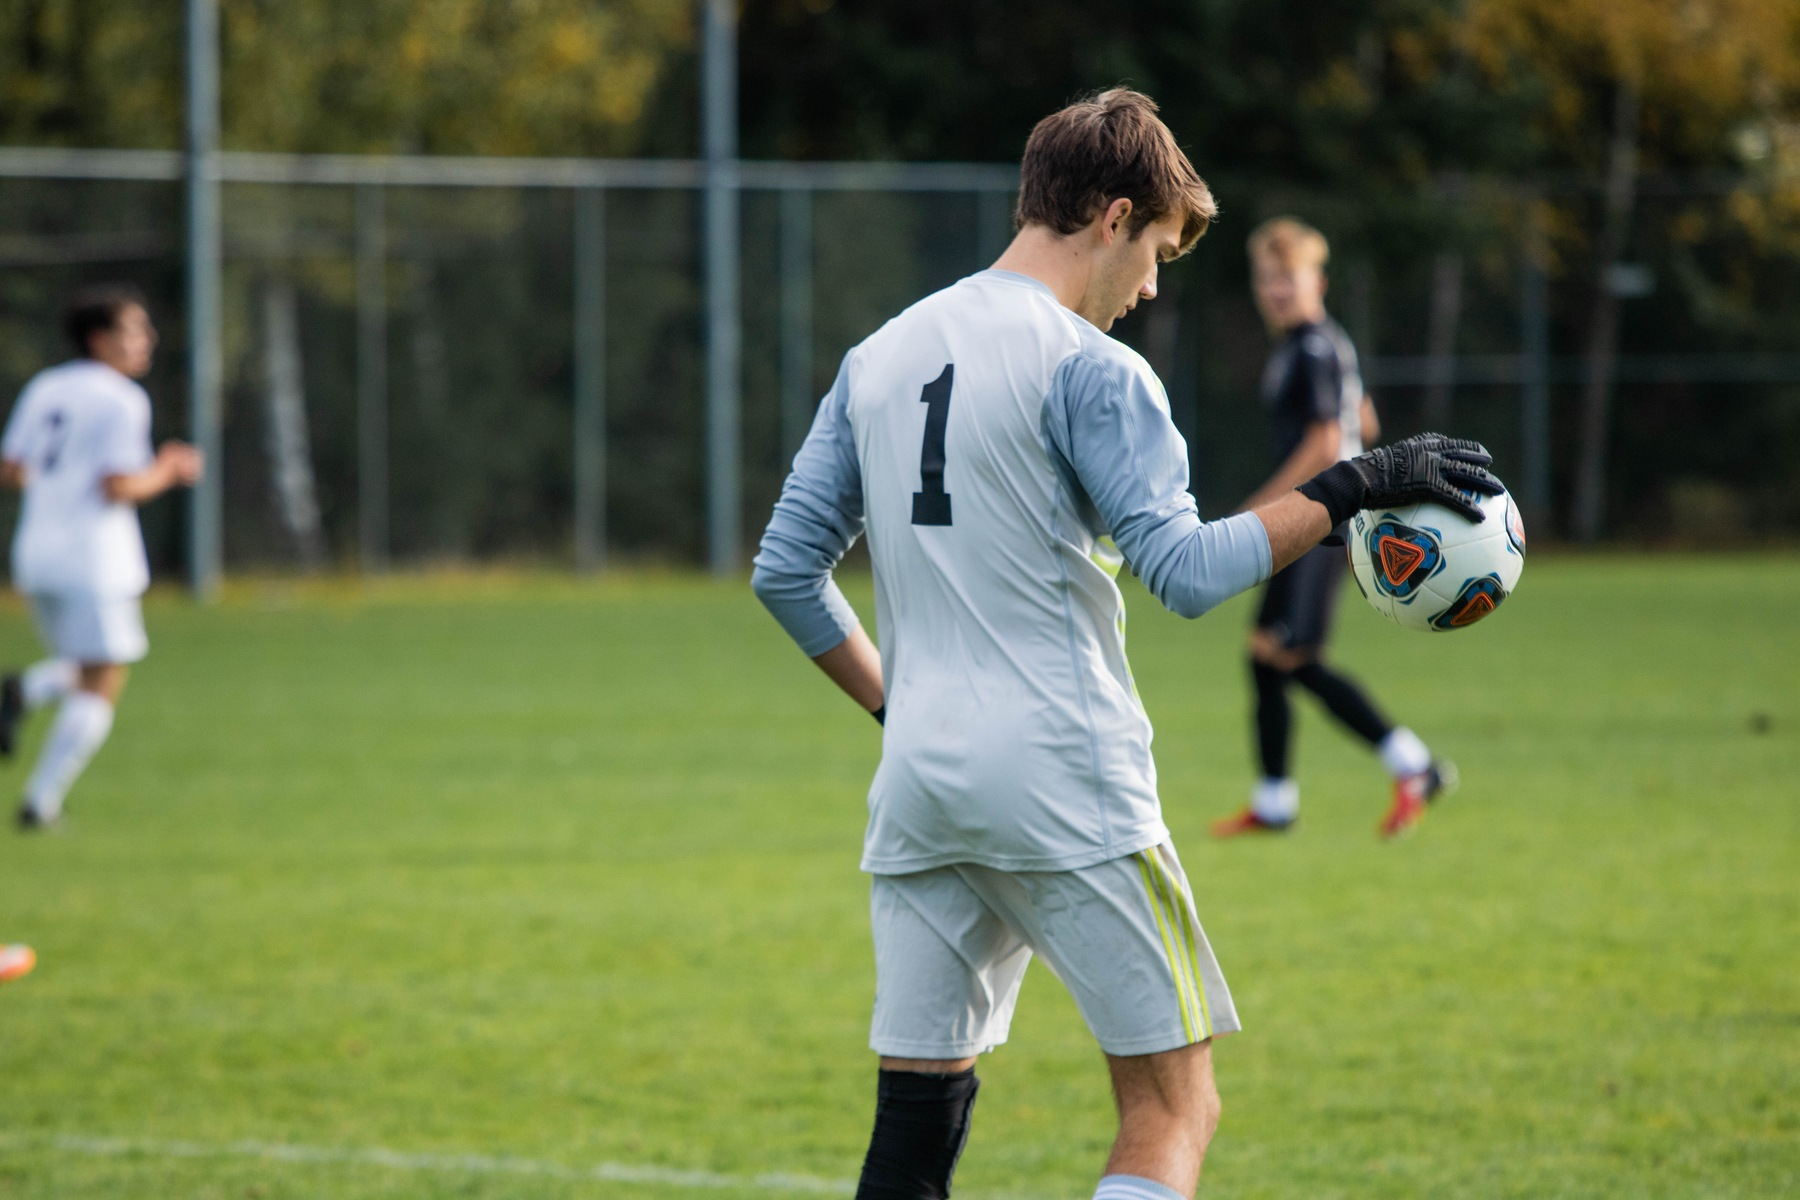 Men's soccer falls, 2-0, to Whitworth